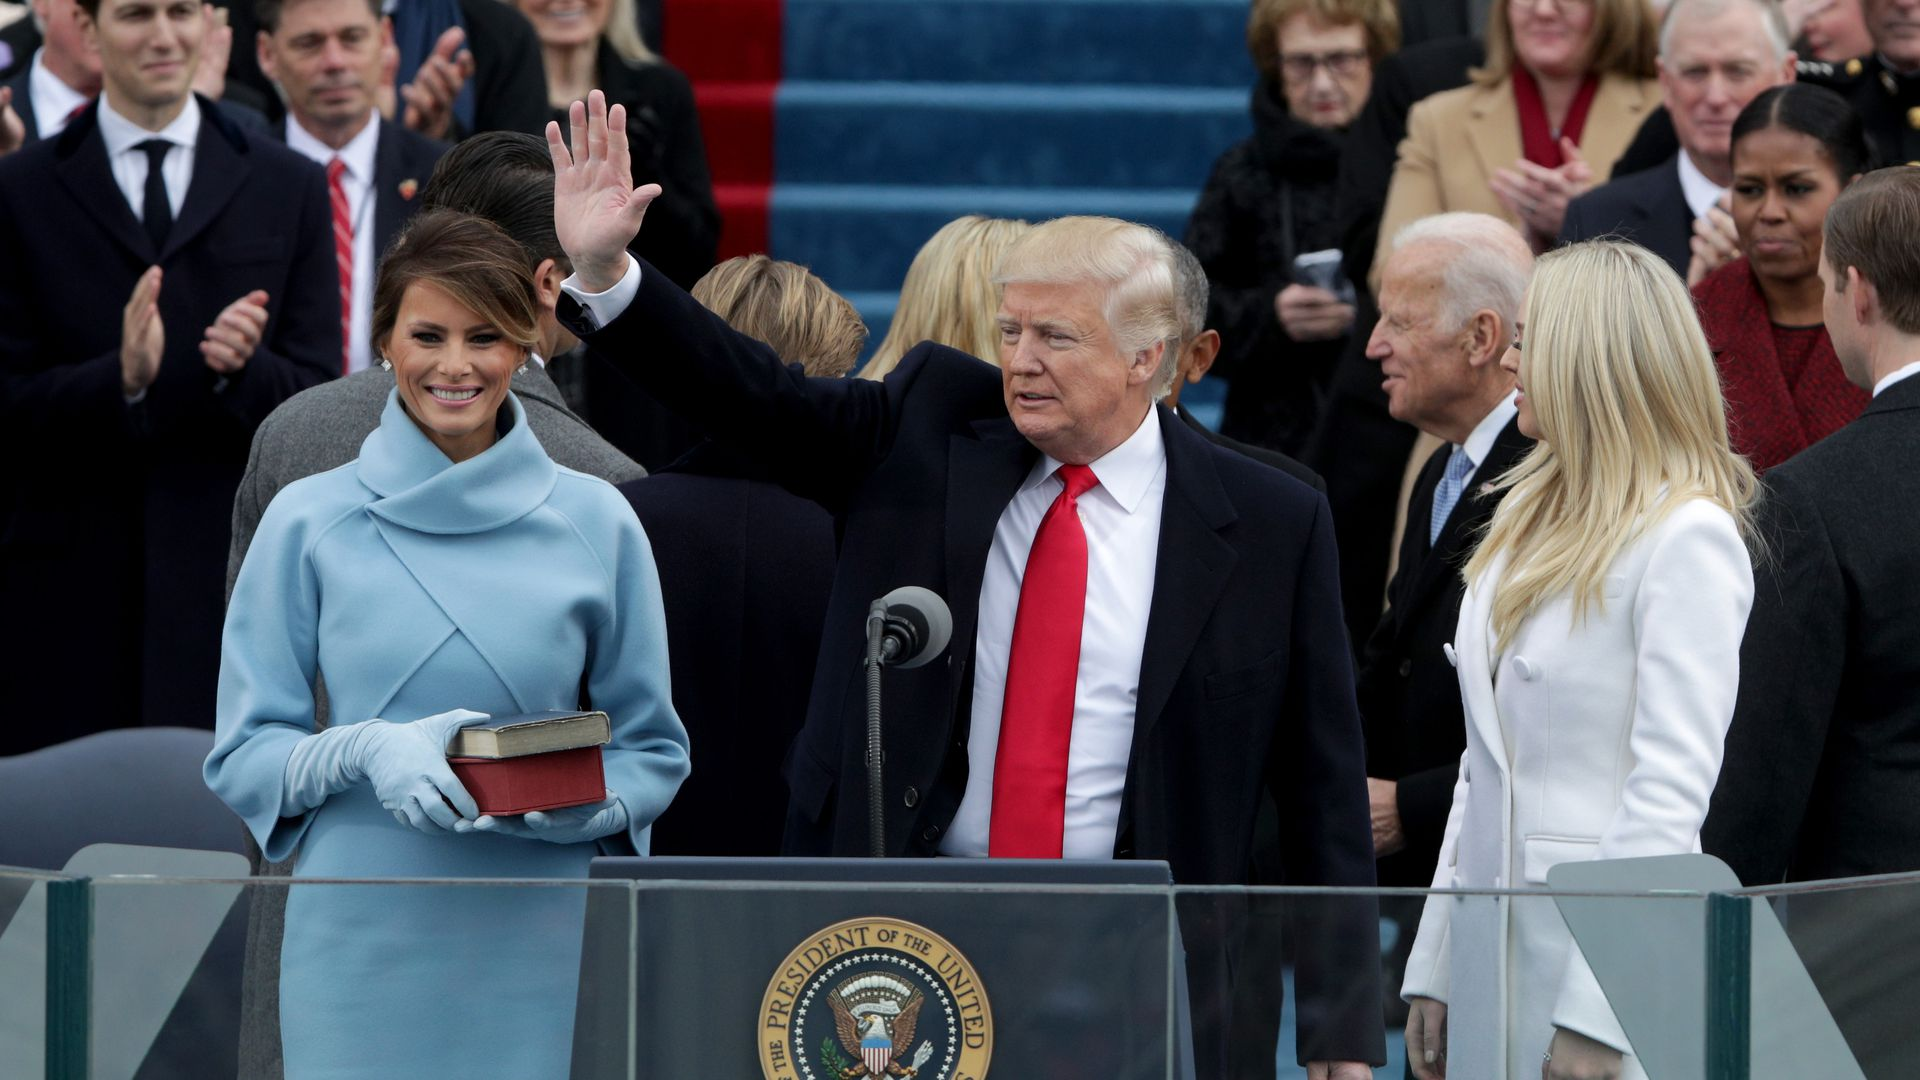 President Donald Trump at his inauguration in January 2017.